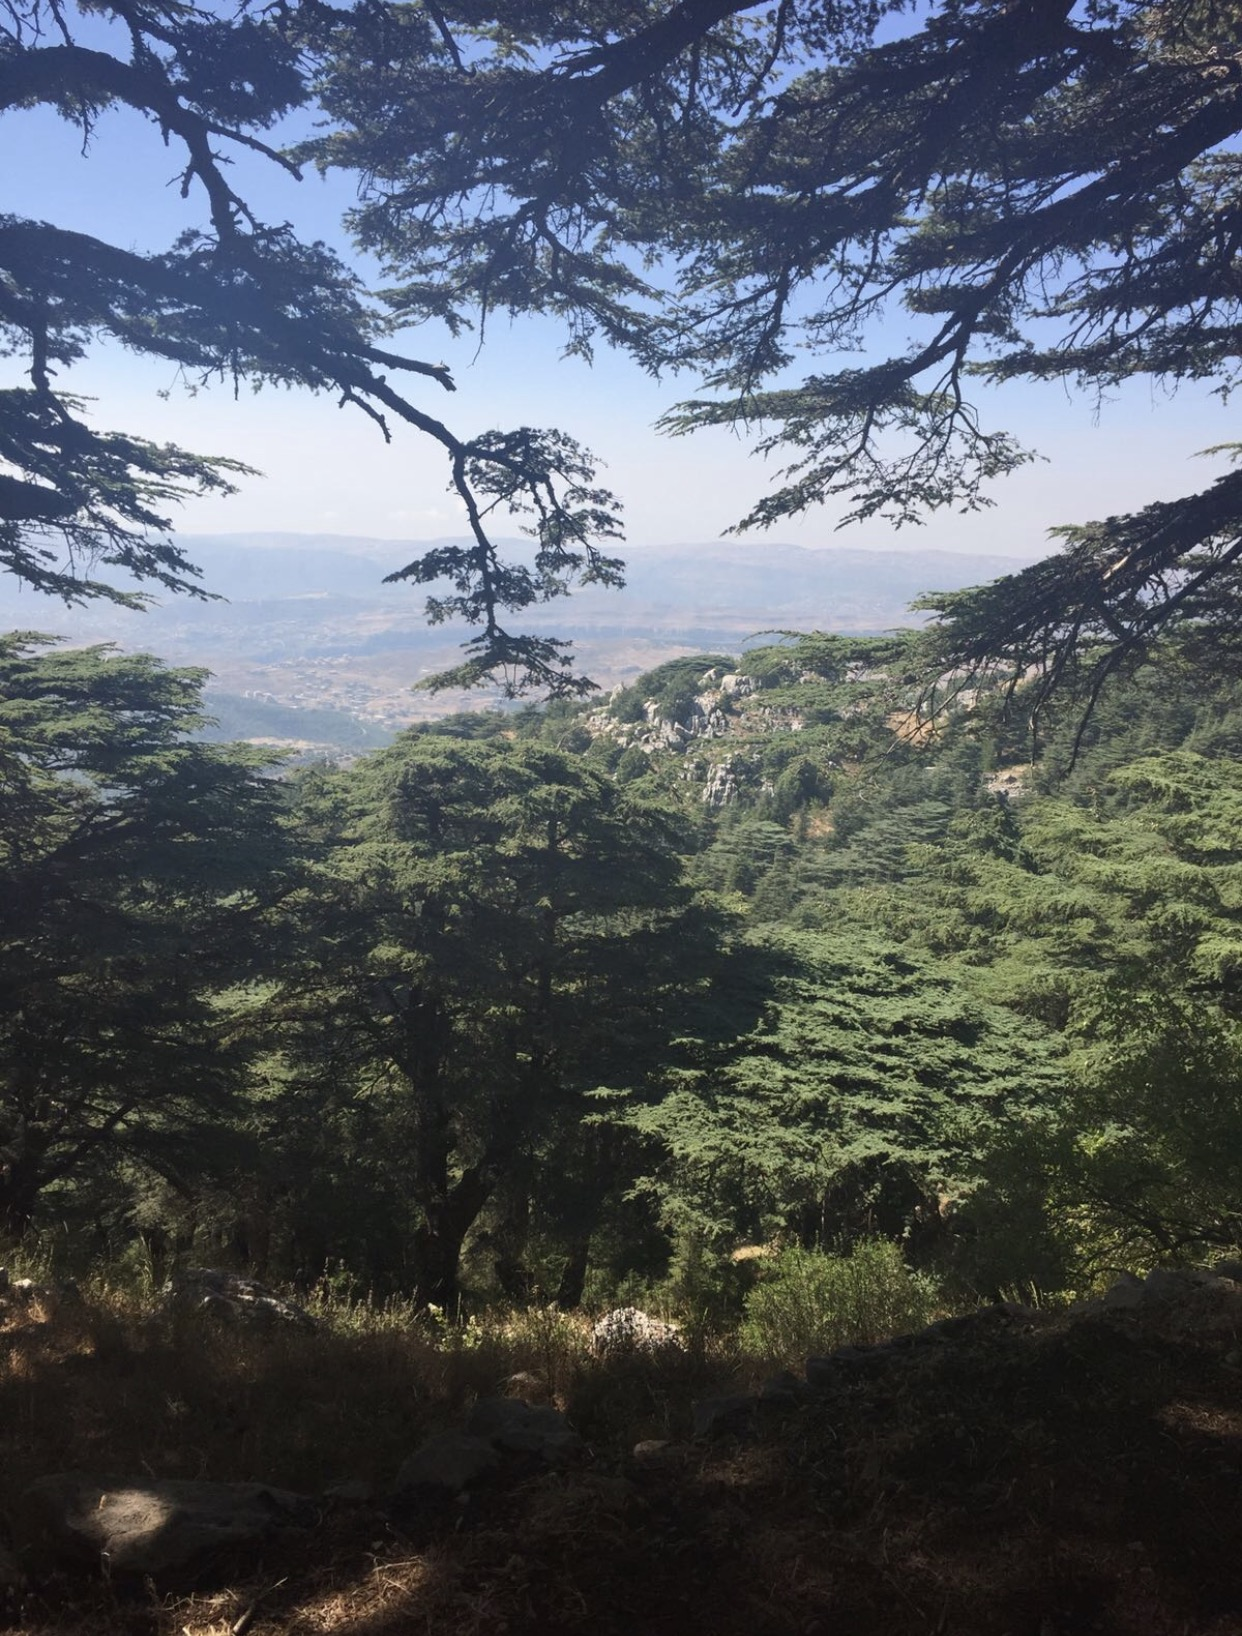 Lebanon,s great oak tree district - Year 2016